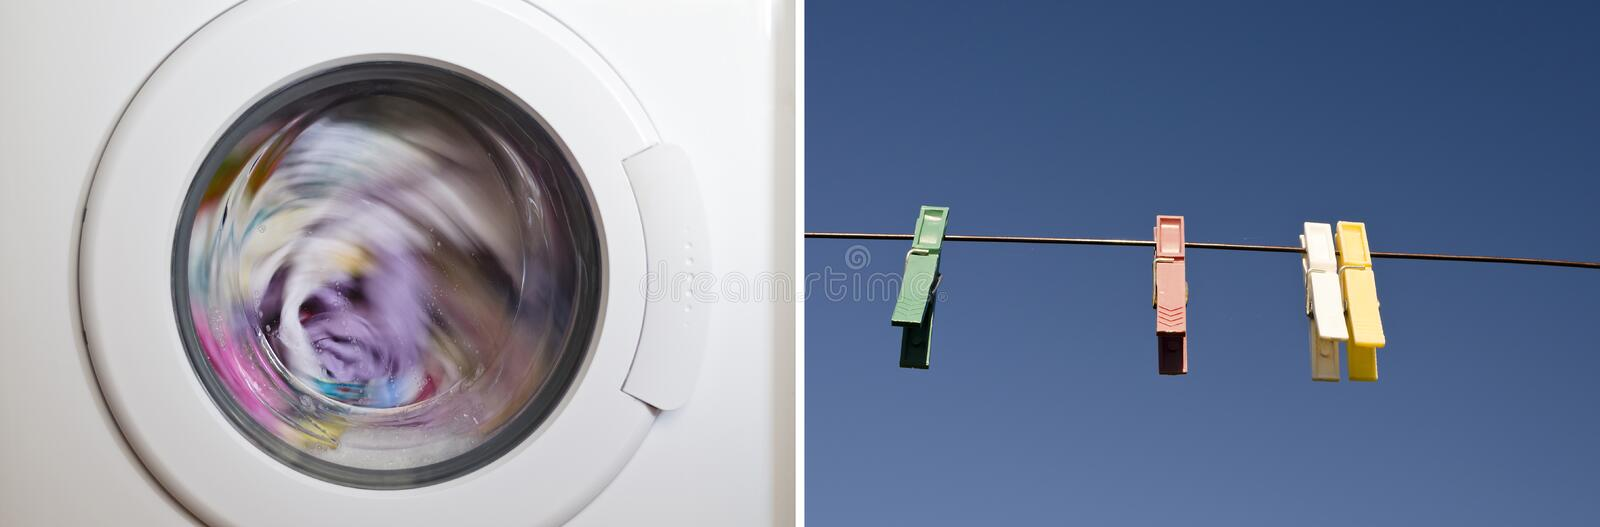 Collage of washing machine. Door with rotating garments inside stock images